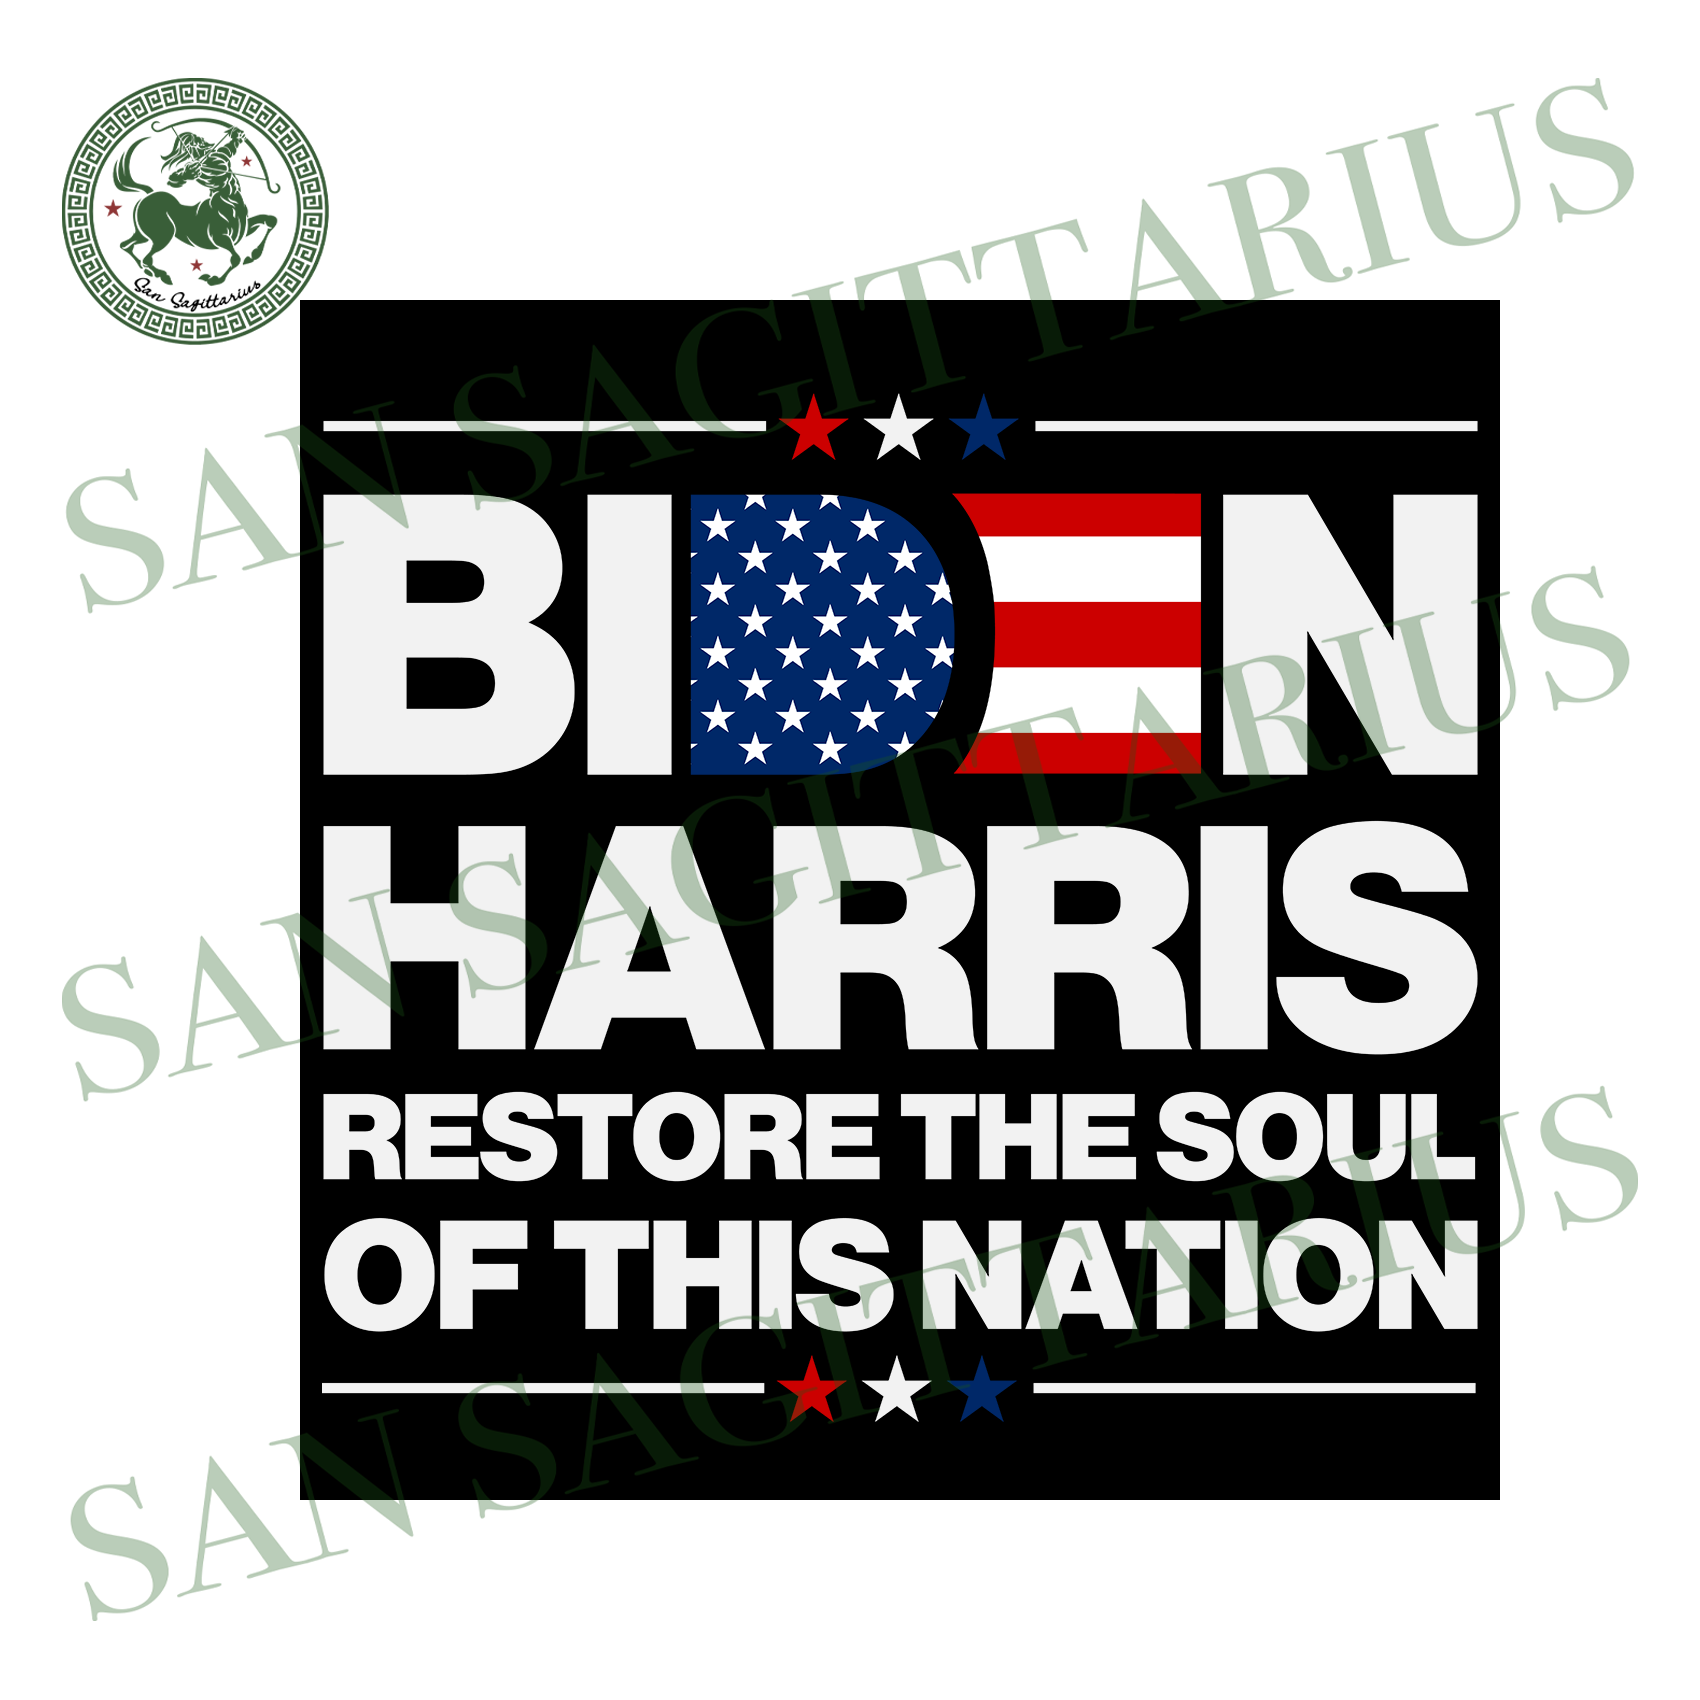 Biden harris restore the soul svg,harris 2020 svg,political shirt svg,anti trump 2020 svg,biden for president svg,svg cricut, silhouette svg files, cricut svg, silhouette svg, svg designs, vi